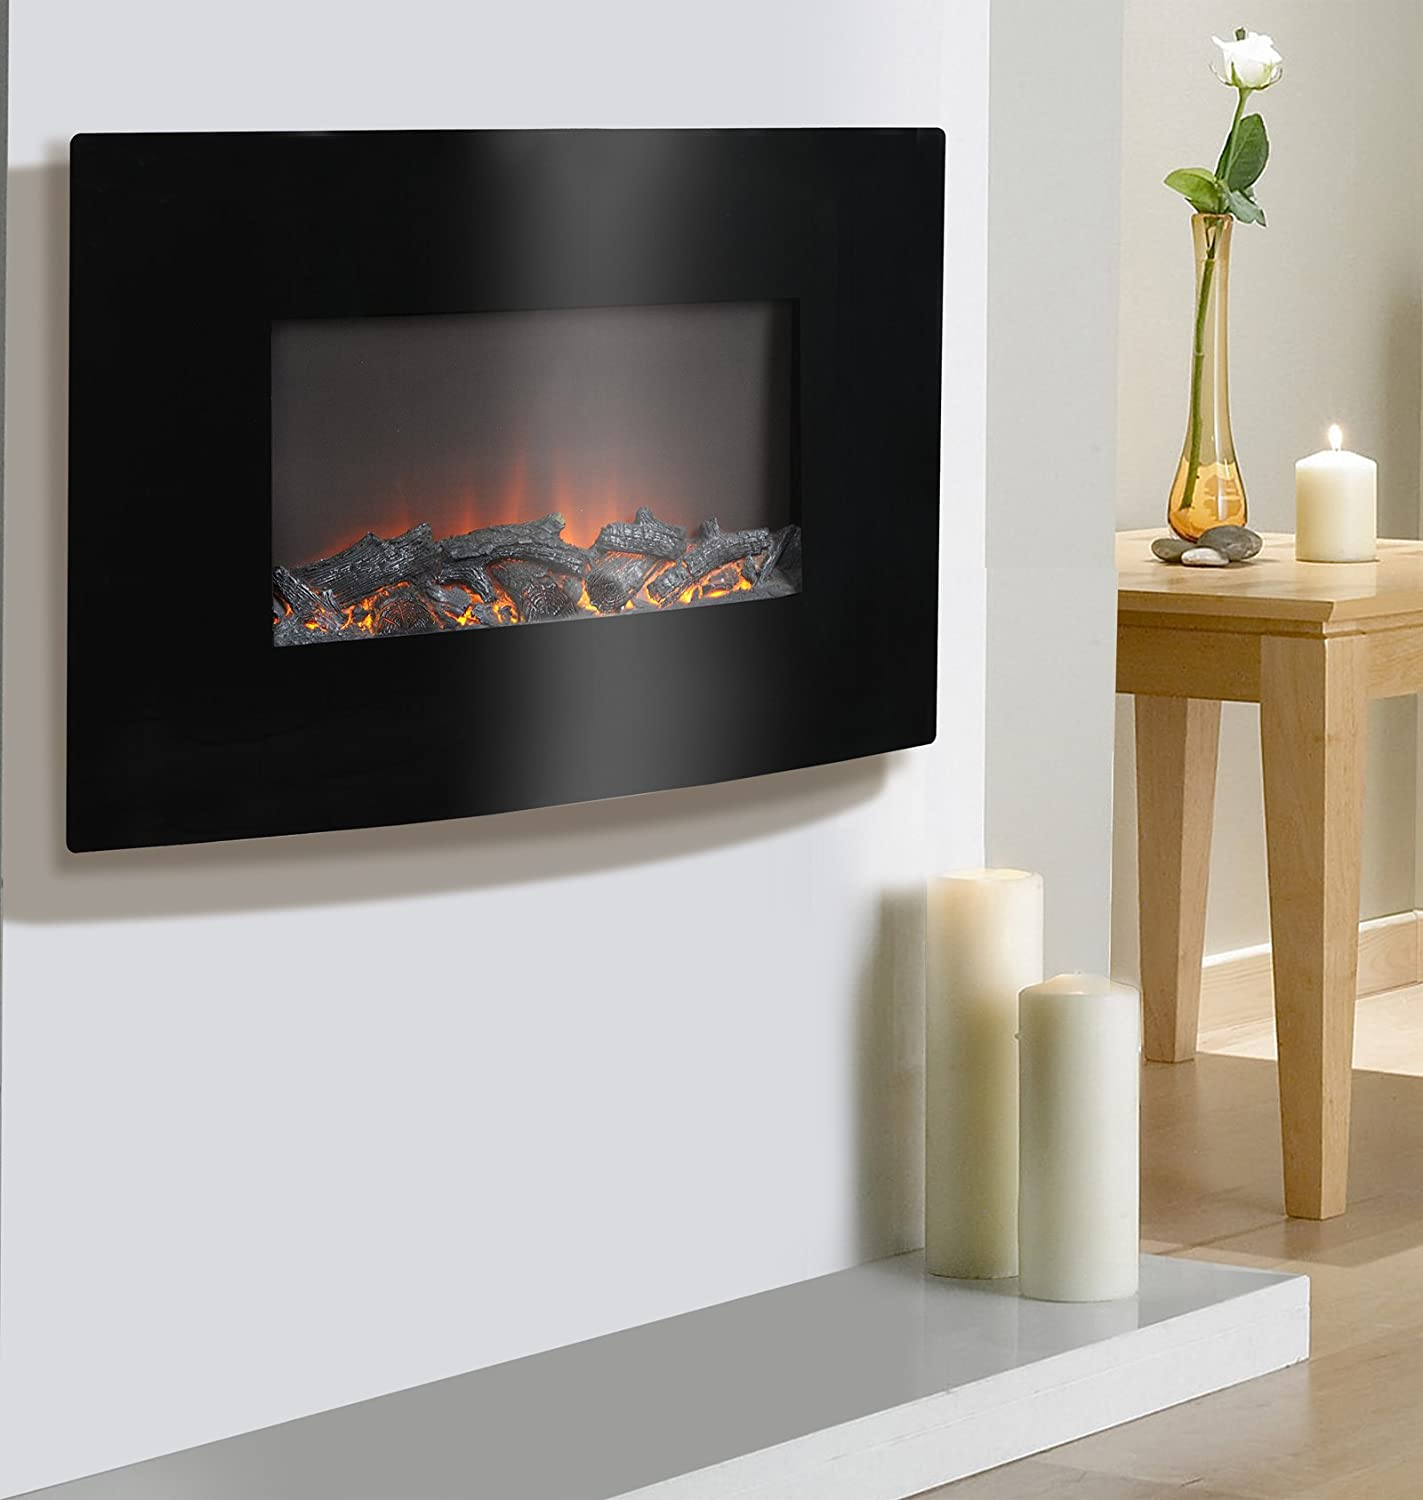 Fire sense black wood wall mounted electric fireplace import it all - Amazon Com Homestar Zodensa Wide Wall Mount Firebox 34 63 X 4 75 X 22 88 Black Home Kitchen